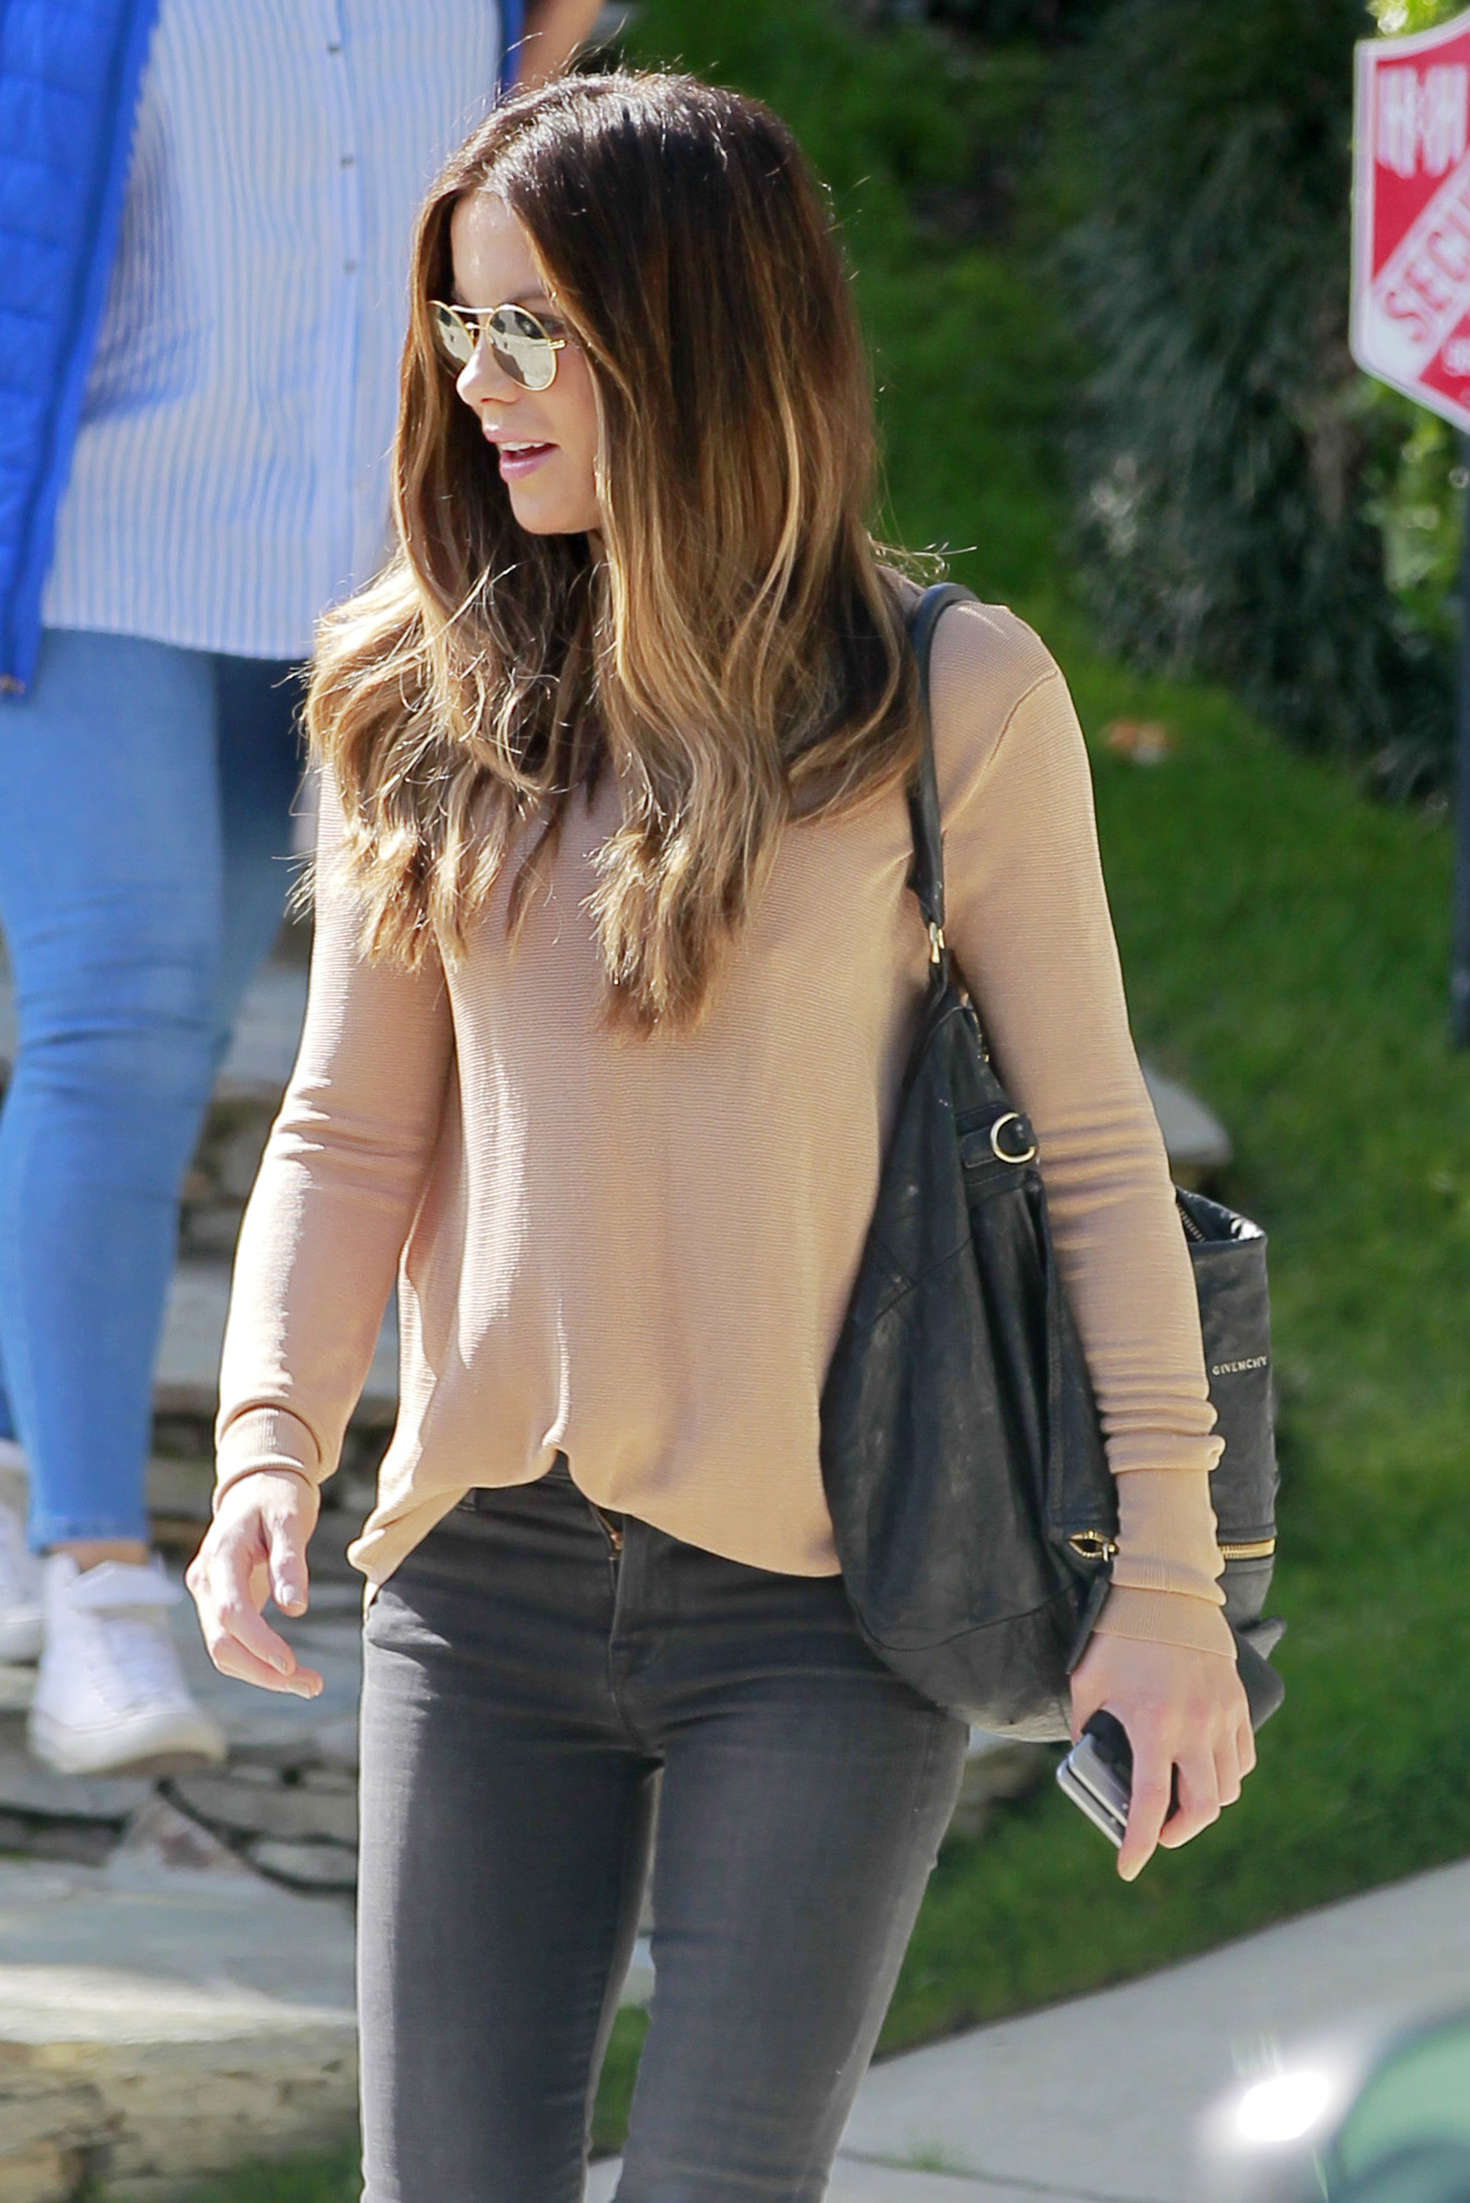 Kate Beckinsale 2016 : Kate Beckinsale in Tight Jeans -09